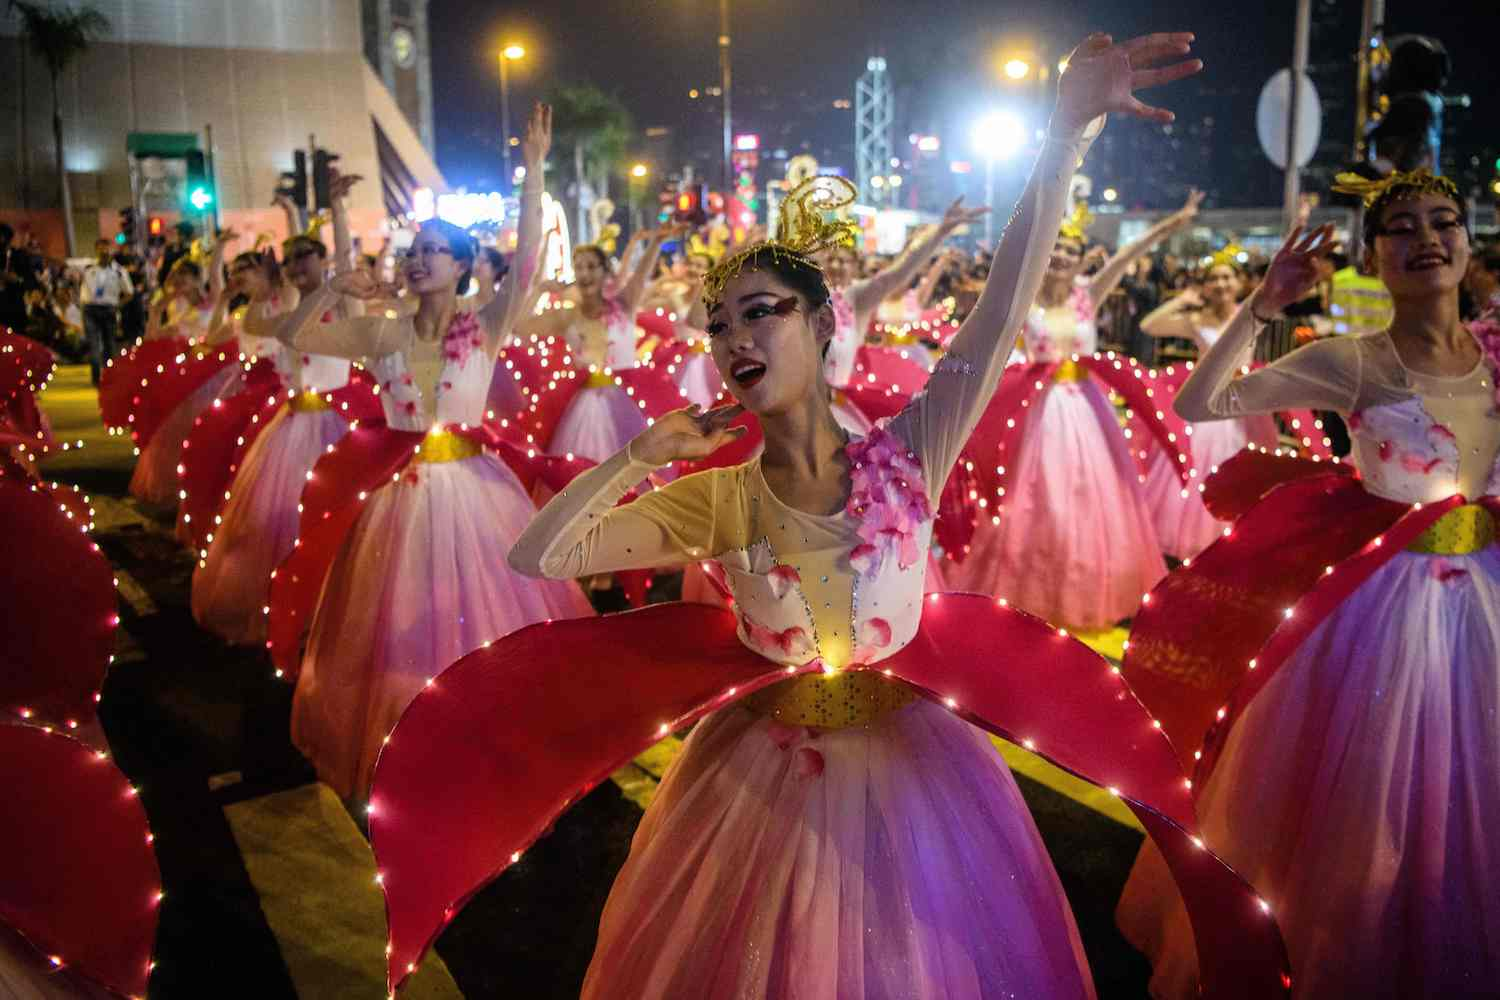 TOPSHOT - Performers take part in a street parade to mark the Lunar New Year celebrations for the Year of the Dog in Hong Kong on February 16, 2018.  / AFP PHOTO / ANTHONY WALLACE        (Photo credit should read ANTHONY WALLACE/AFP/Getty Images)